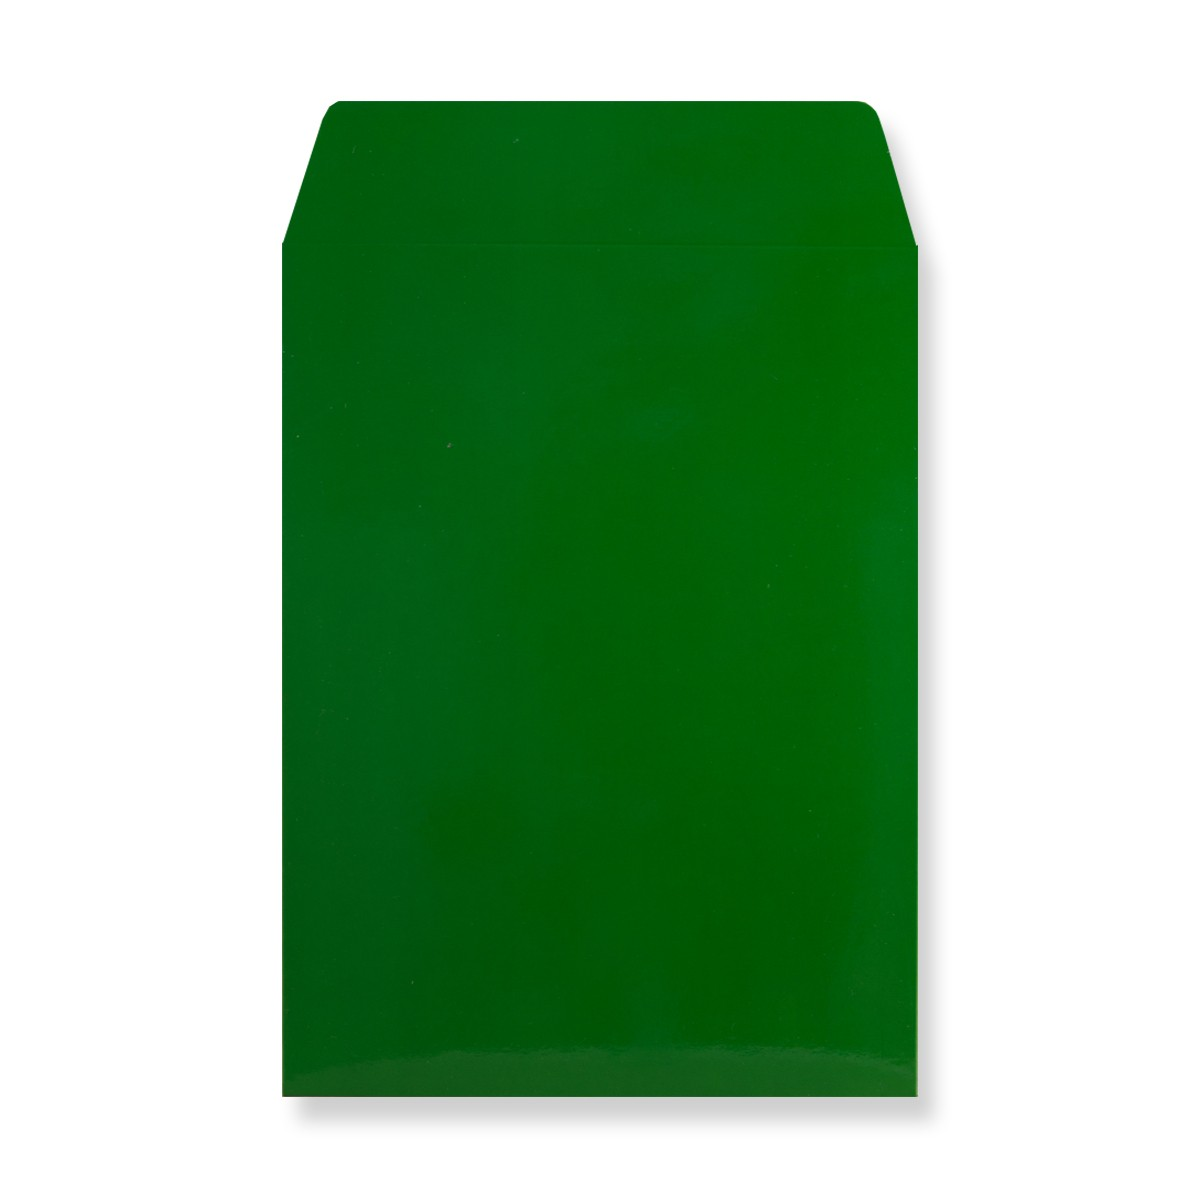 C3 GREEN ALL BOARD ENVELOPES